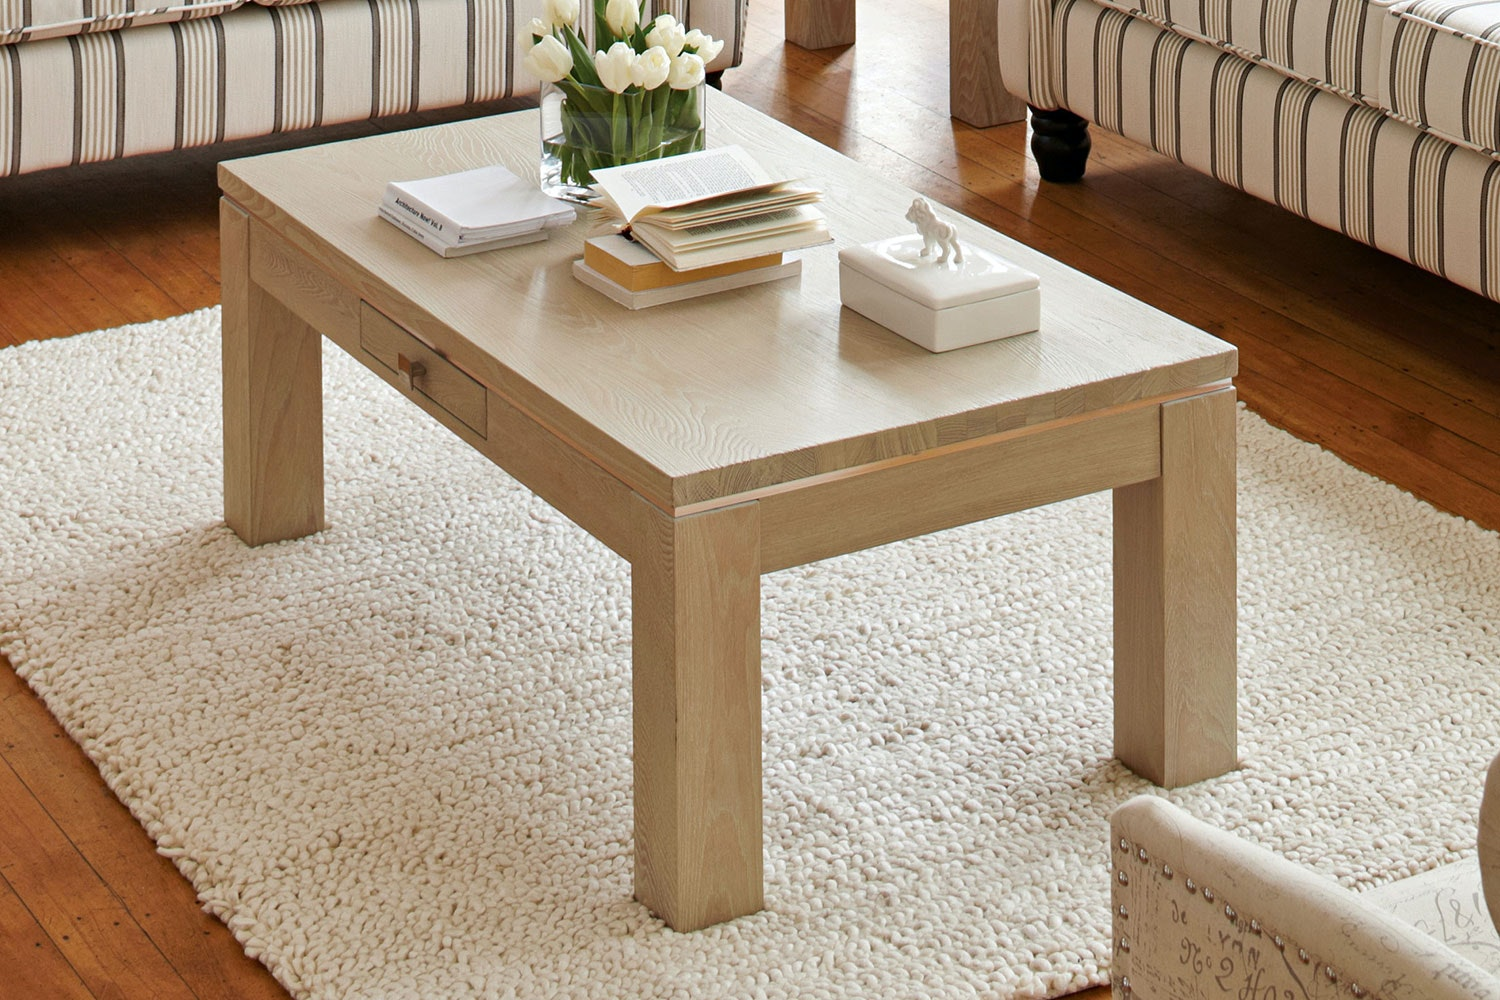 Edminton Coffee Table - Morgan Furniture